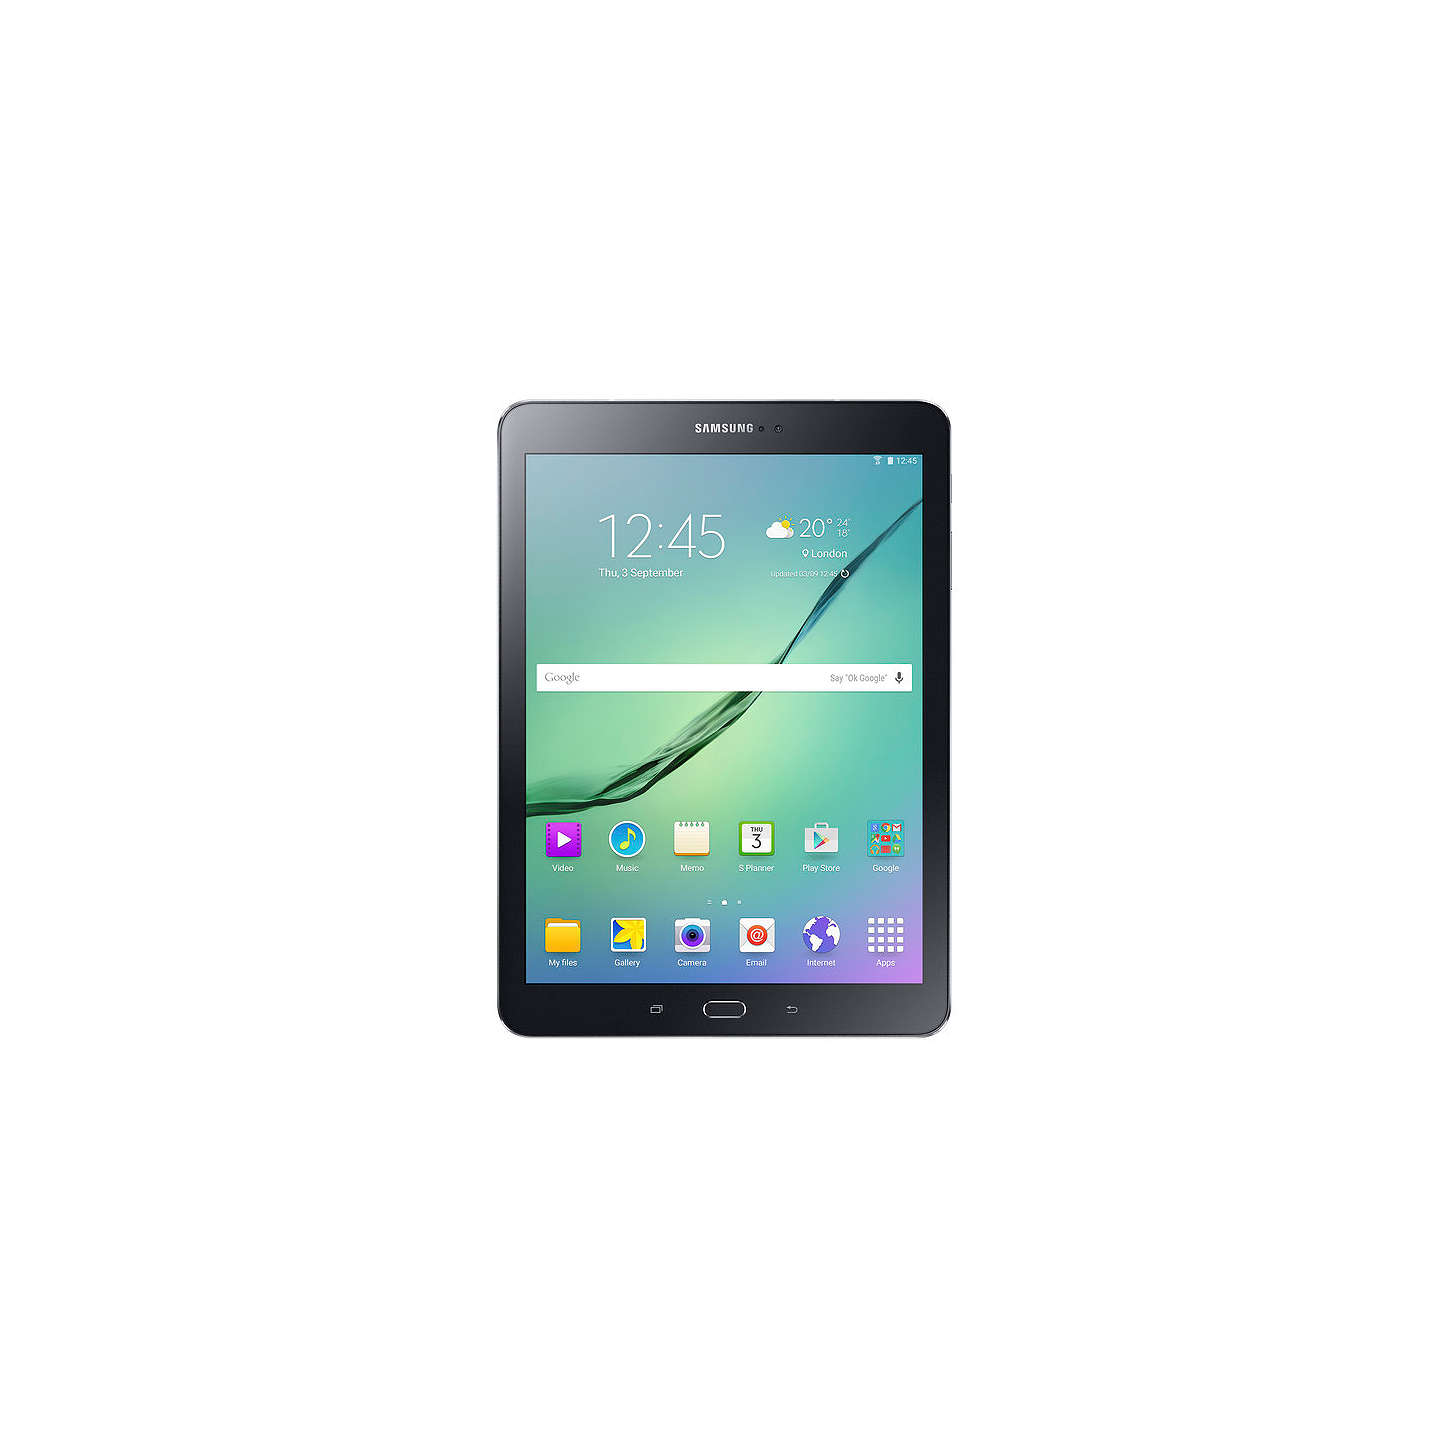 Samsung galaxy tab s2 octa core exynos android 97 wi fi 32gb buysamsung galaxy tab s2 octa core exynos android 97 wi greentooth Image collections